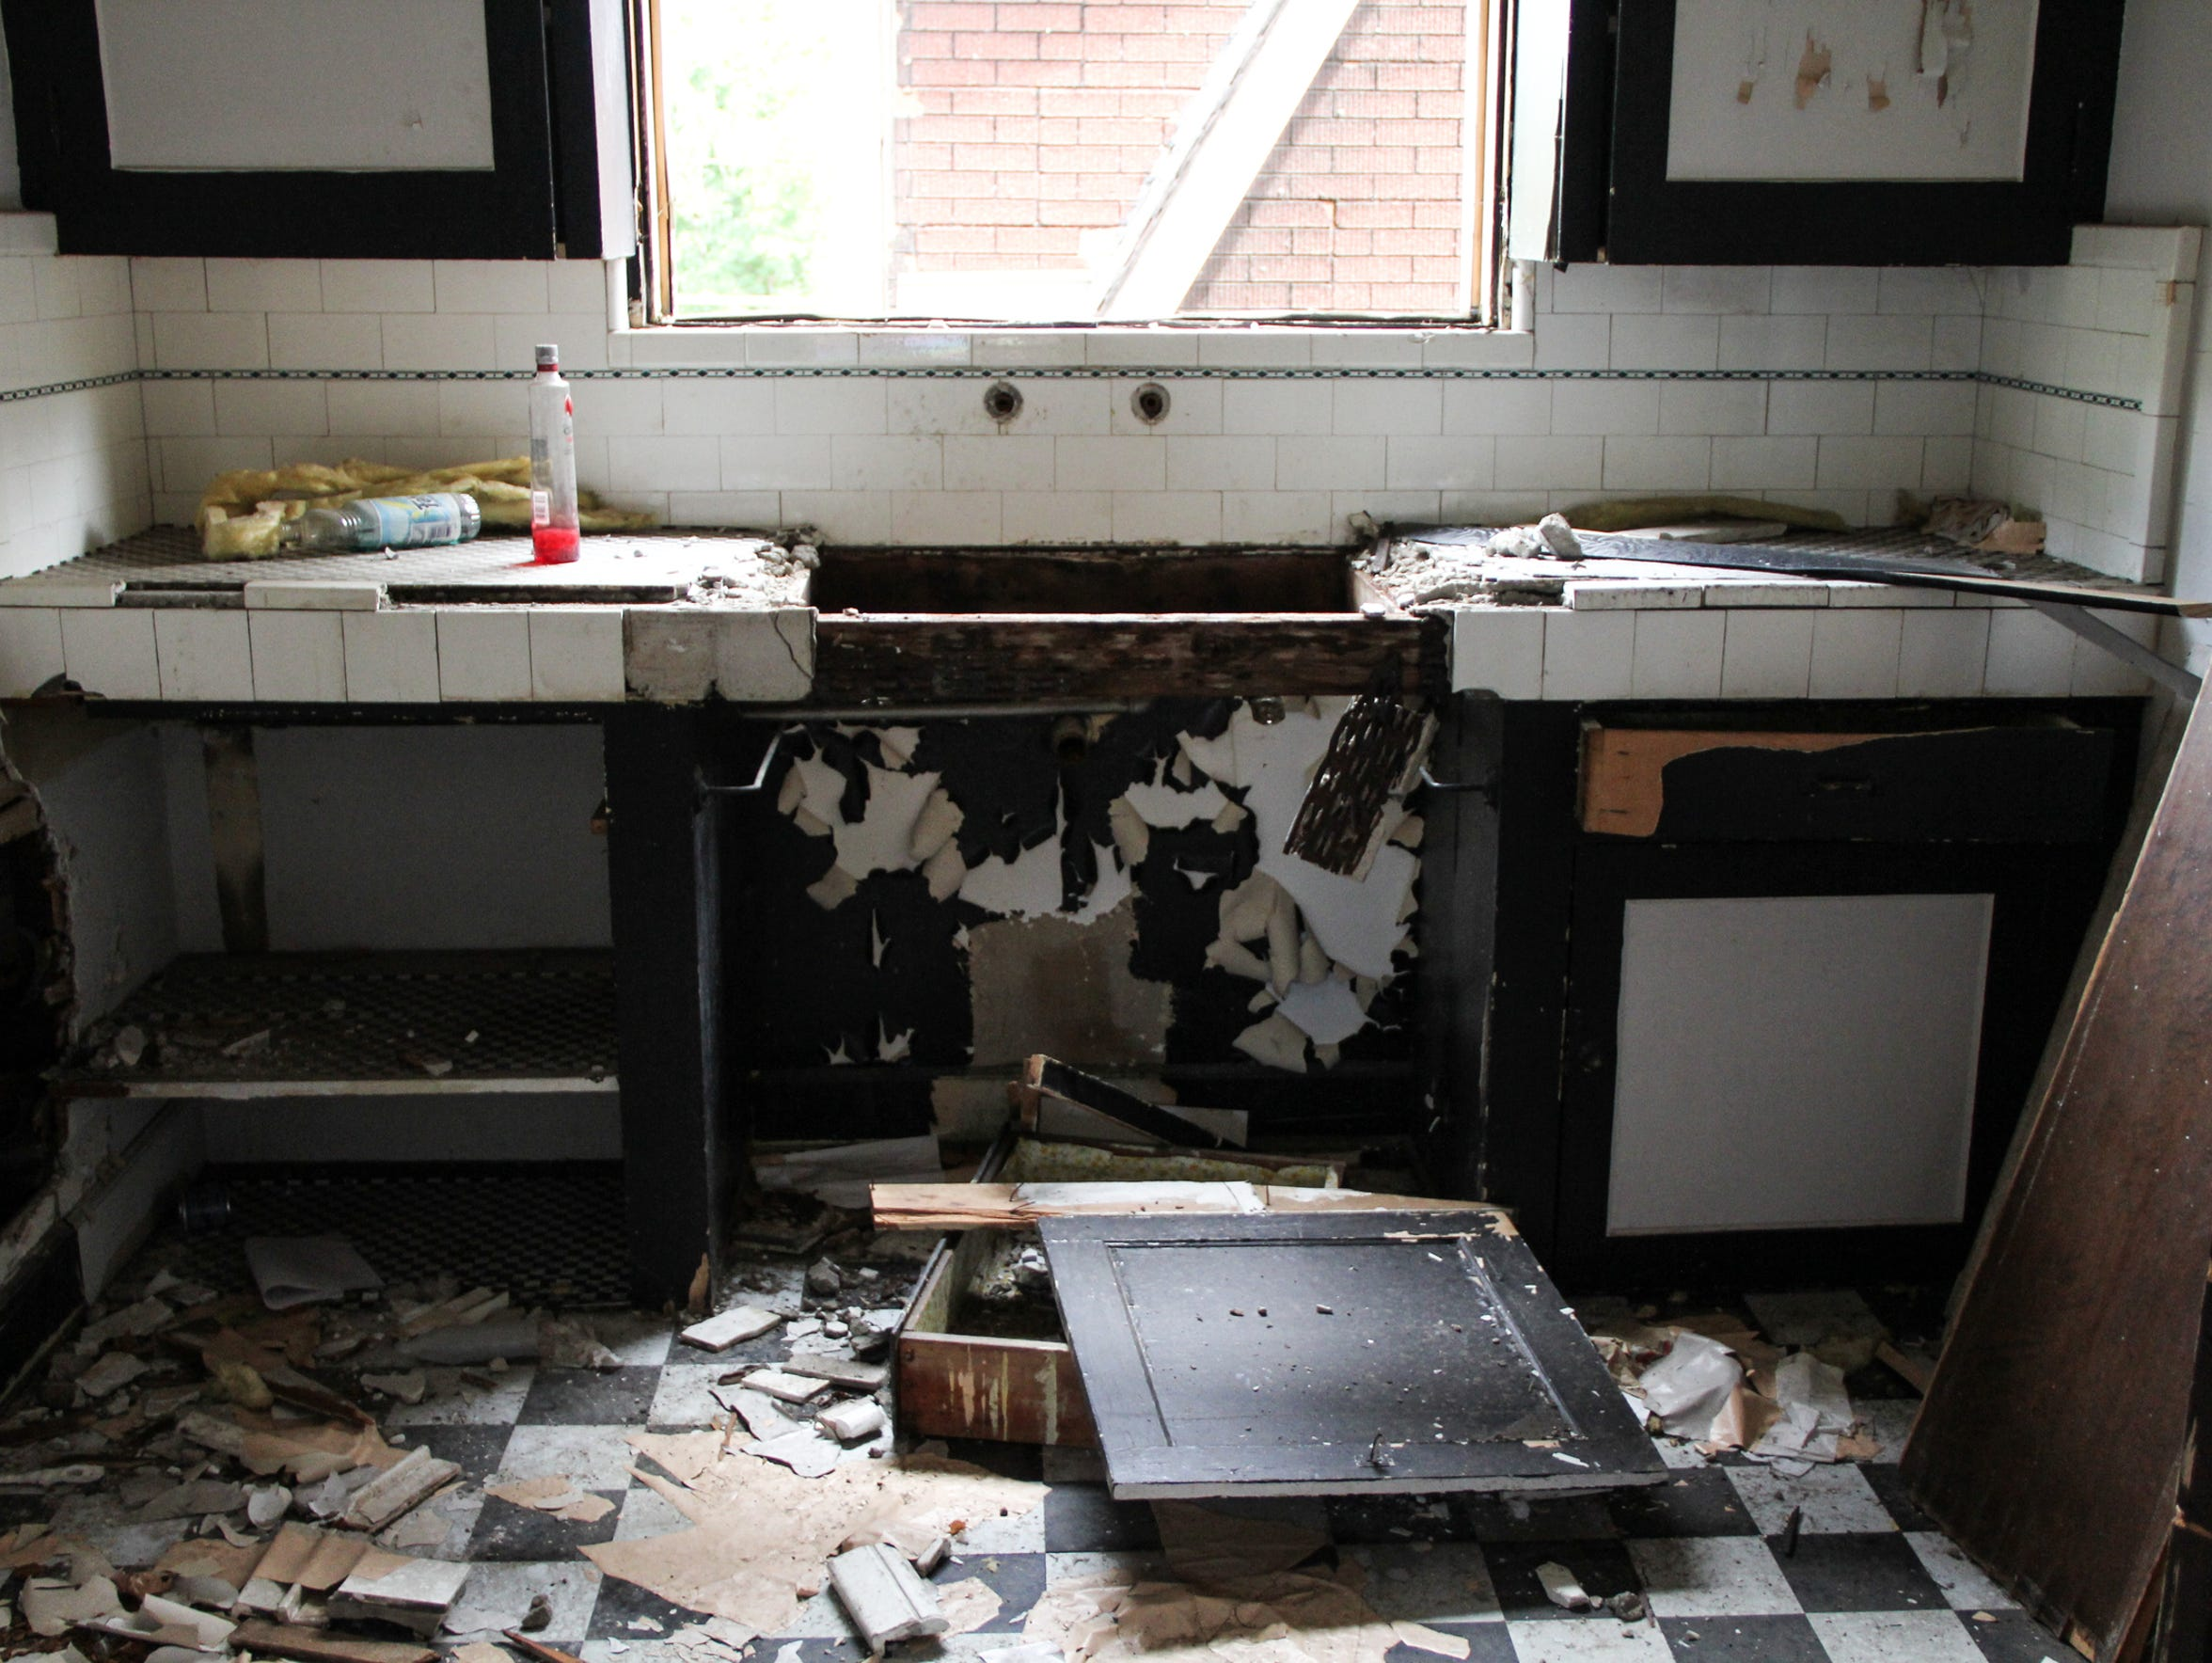 Scavengers destroyed the kitchen in the second-floor